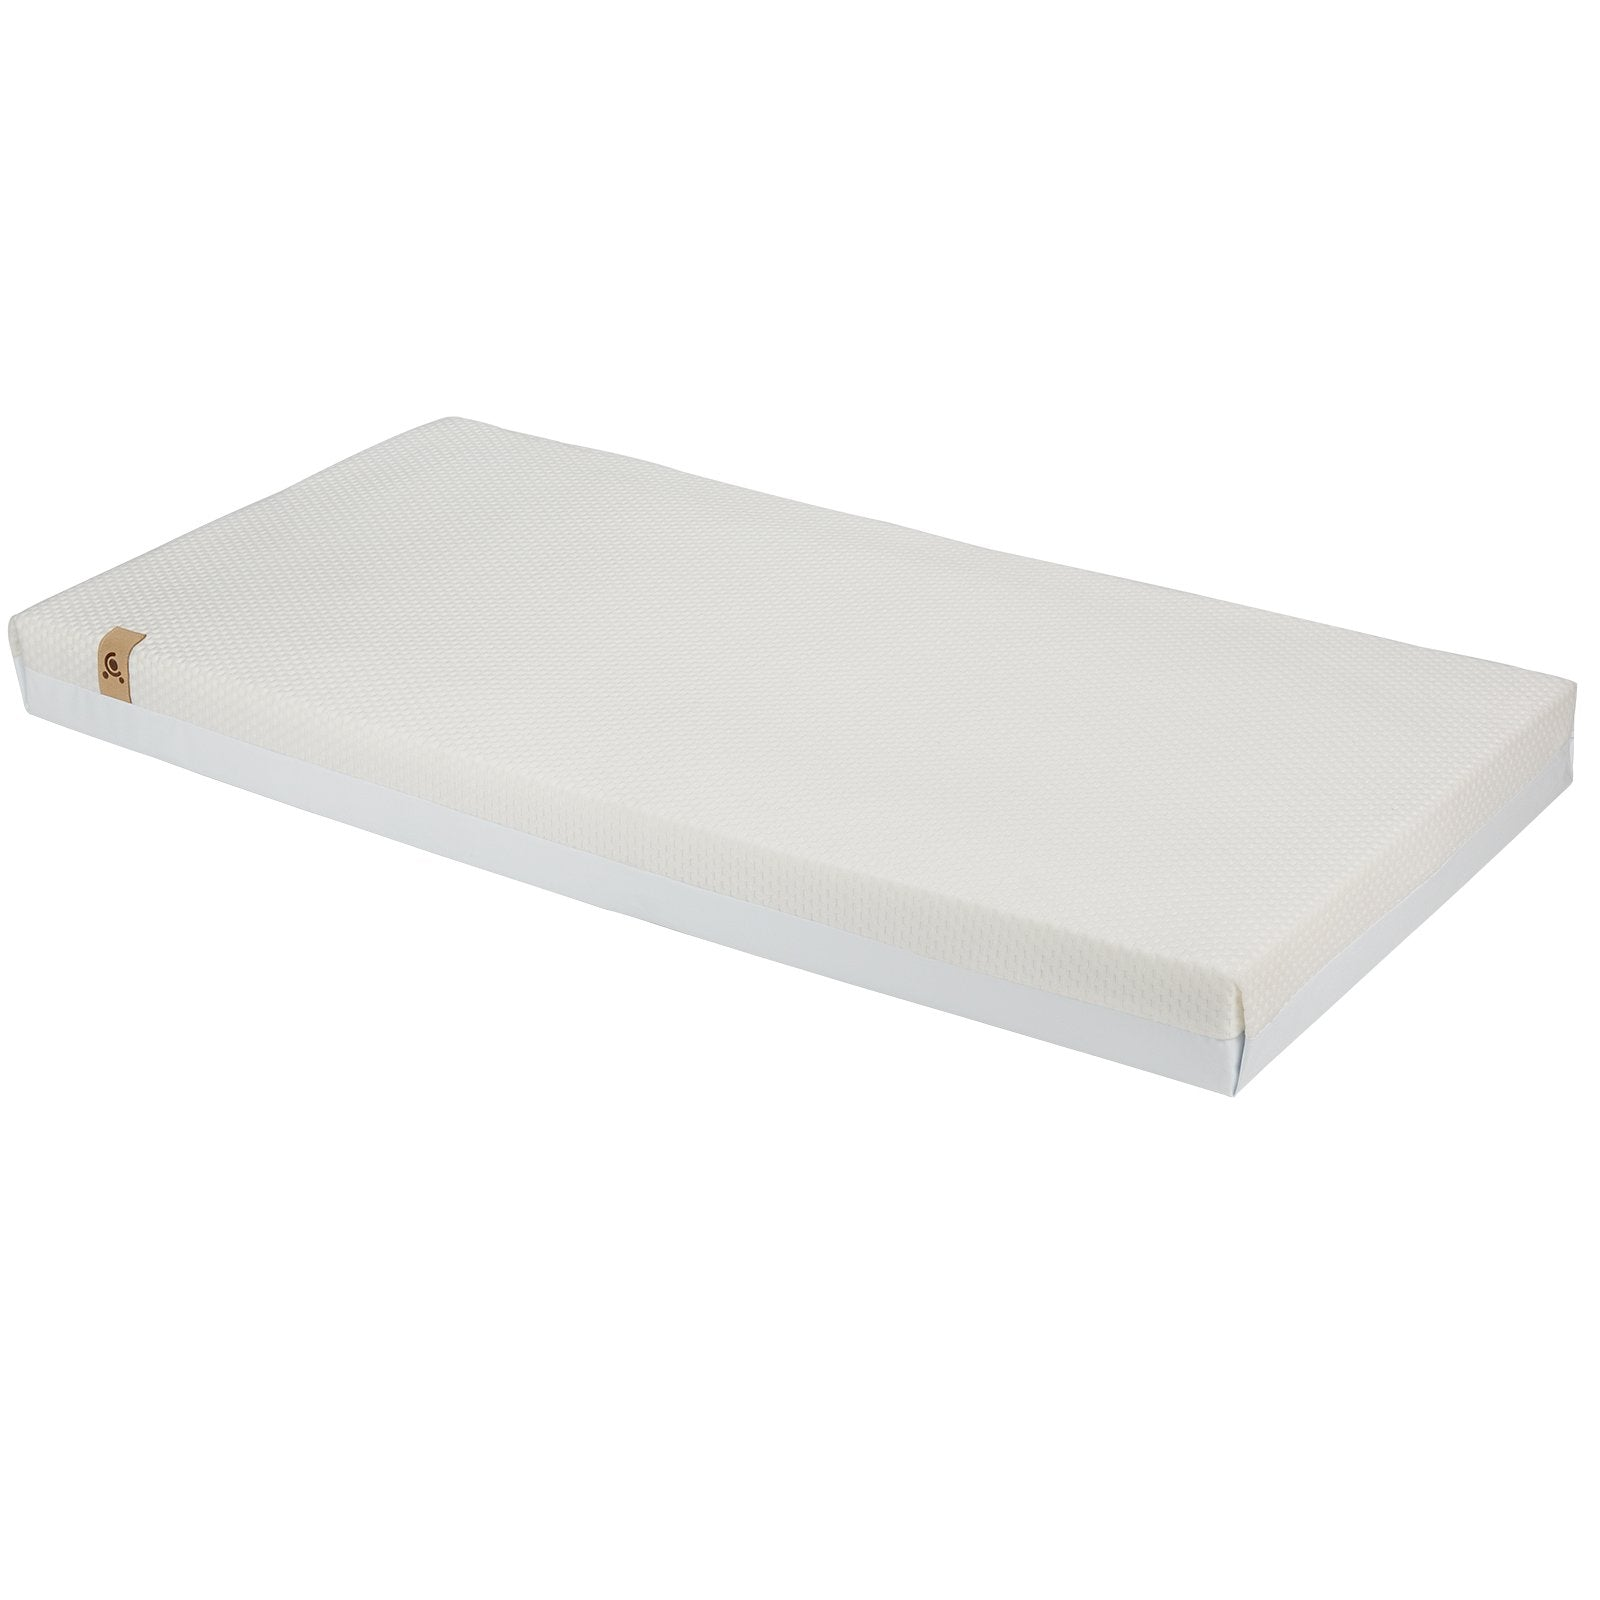 Aylesbury Cot Bed White + Signature Hypo-Allergenic Bamboo Pocket Sprung Cot Bed Mattress Furniture CuddleCo